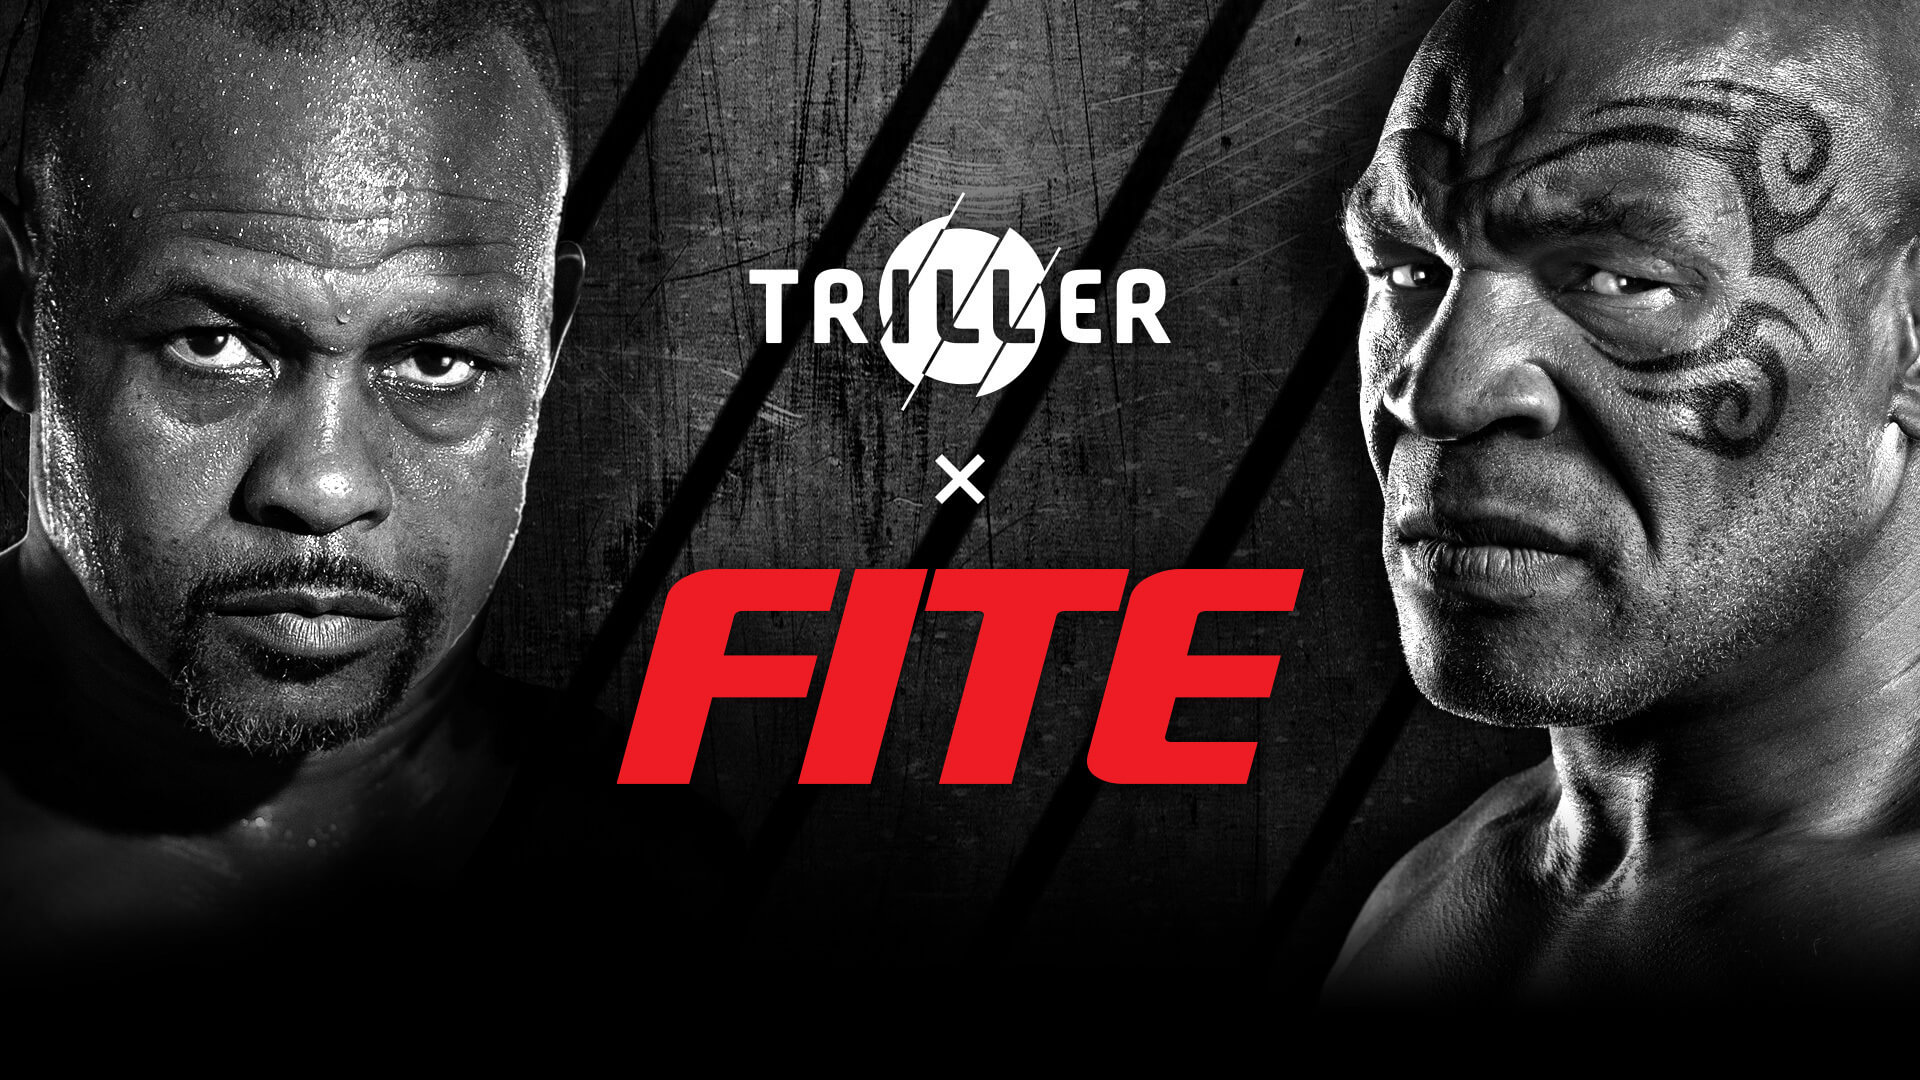 TysonOnTriller.com platform is powered by FITE, which scored the exclusive digital rights for the U.S. and Canada; Buy the event on all FITE platforms for $49.99